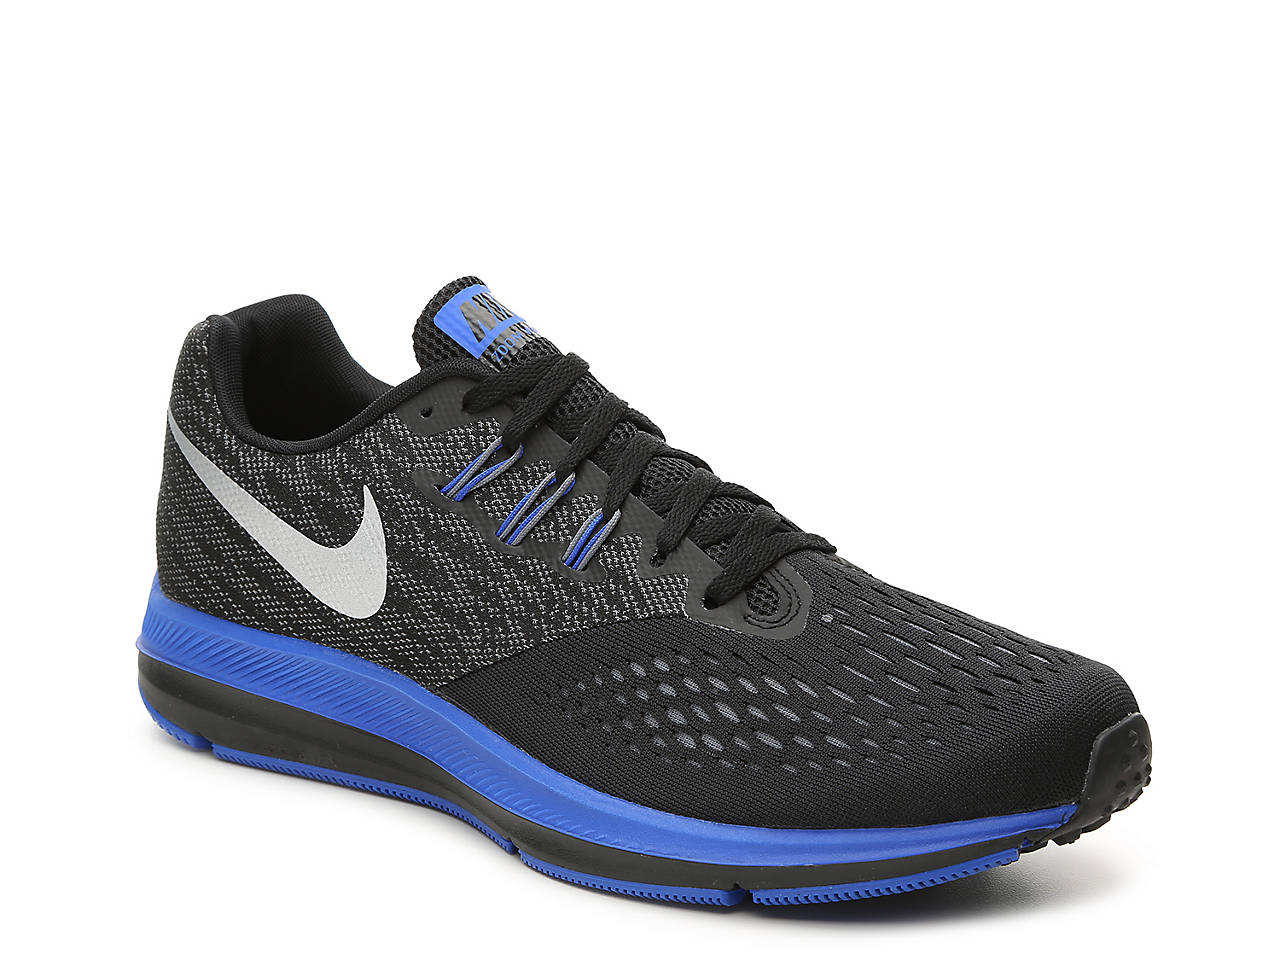 91367f15061 Nike Zoom Winflo 4 Lightweight Running Shoe - Men s Men s Shoes